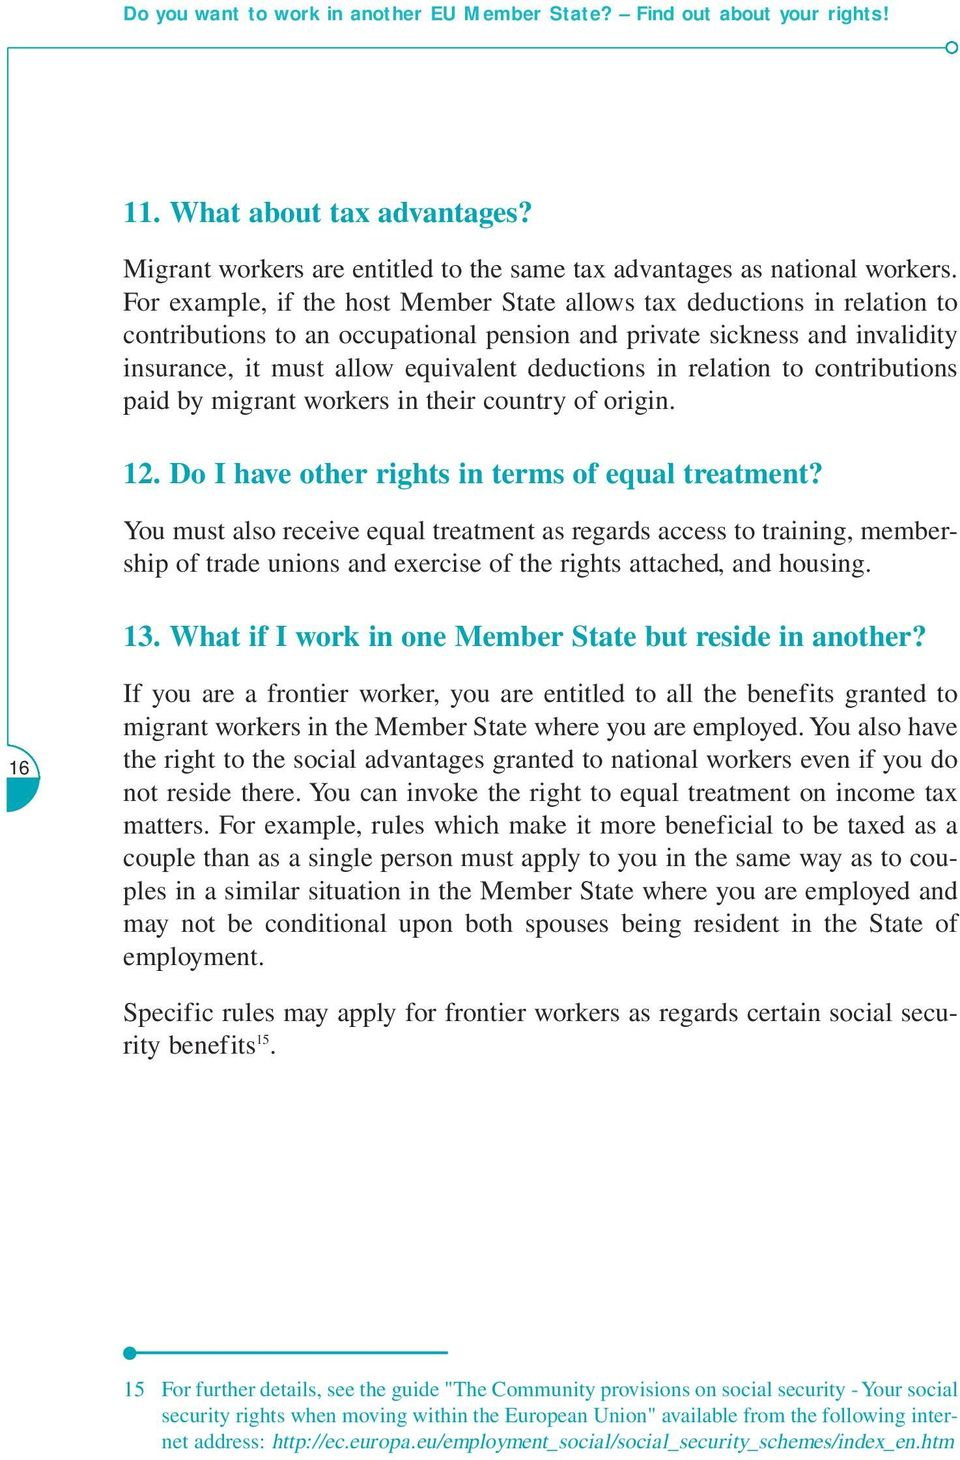 in relation to contributions paid by migrant workers in their country of origin. 12. Do I have other rights in terms of equal treatment?